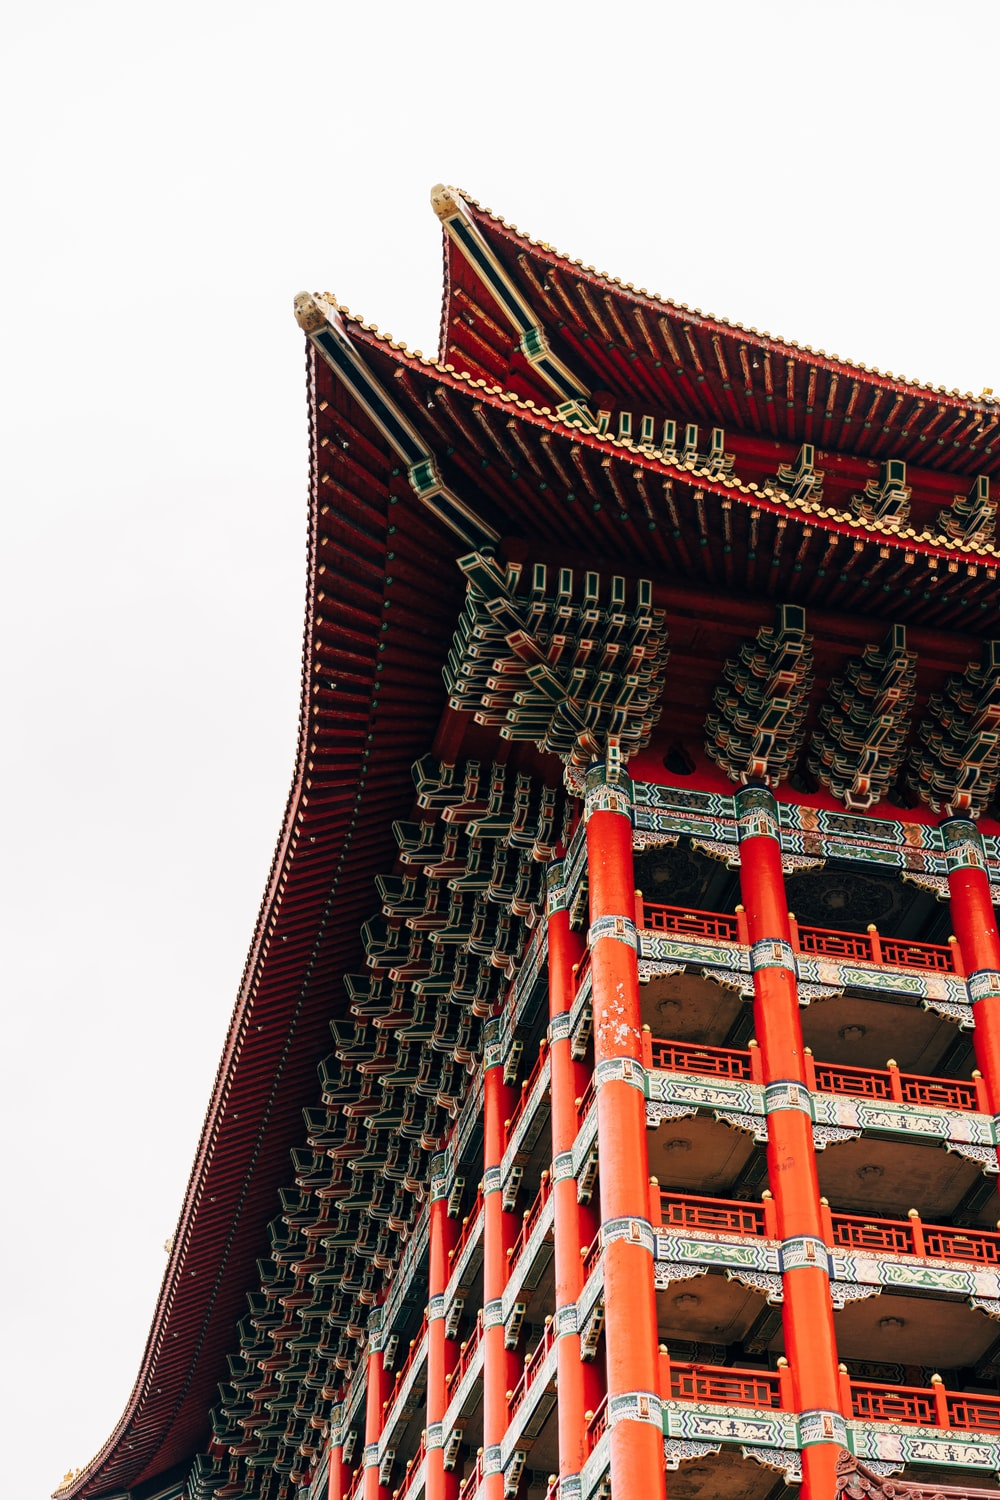 red and white temple under white sky during daytime